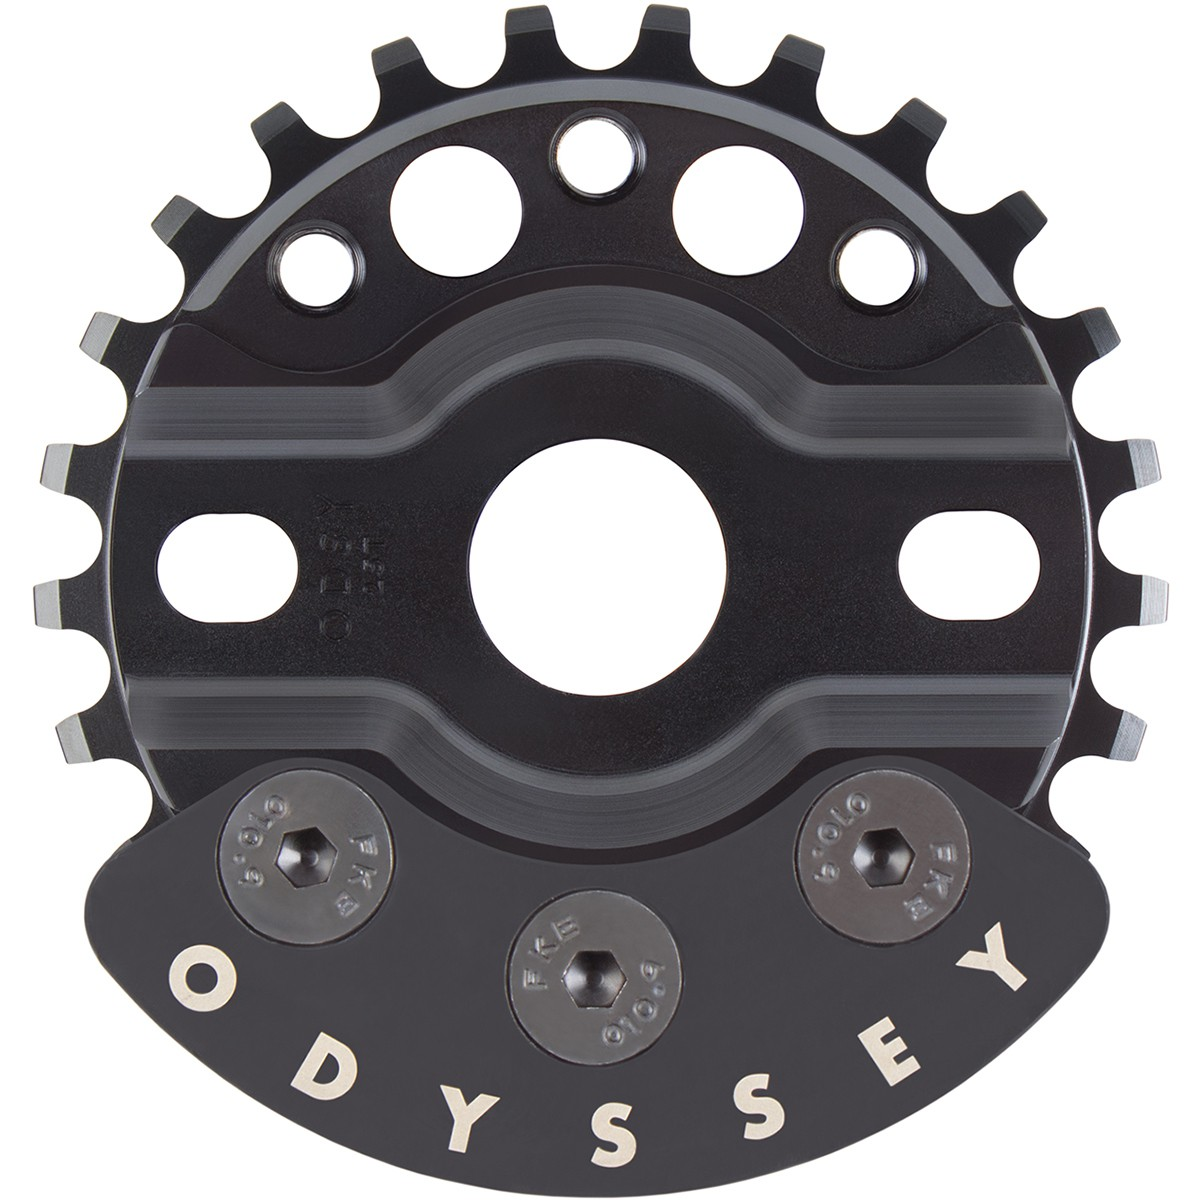 COURONNE ODYSSEY HALFBASH (w/guard) 25T & 28T BLACK